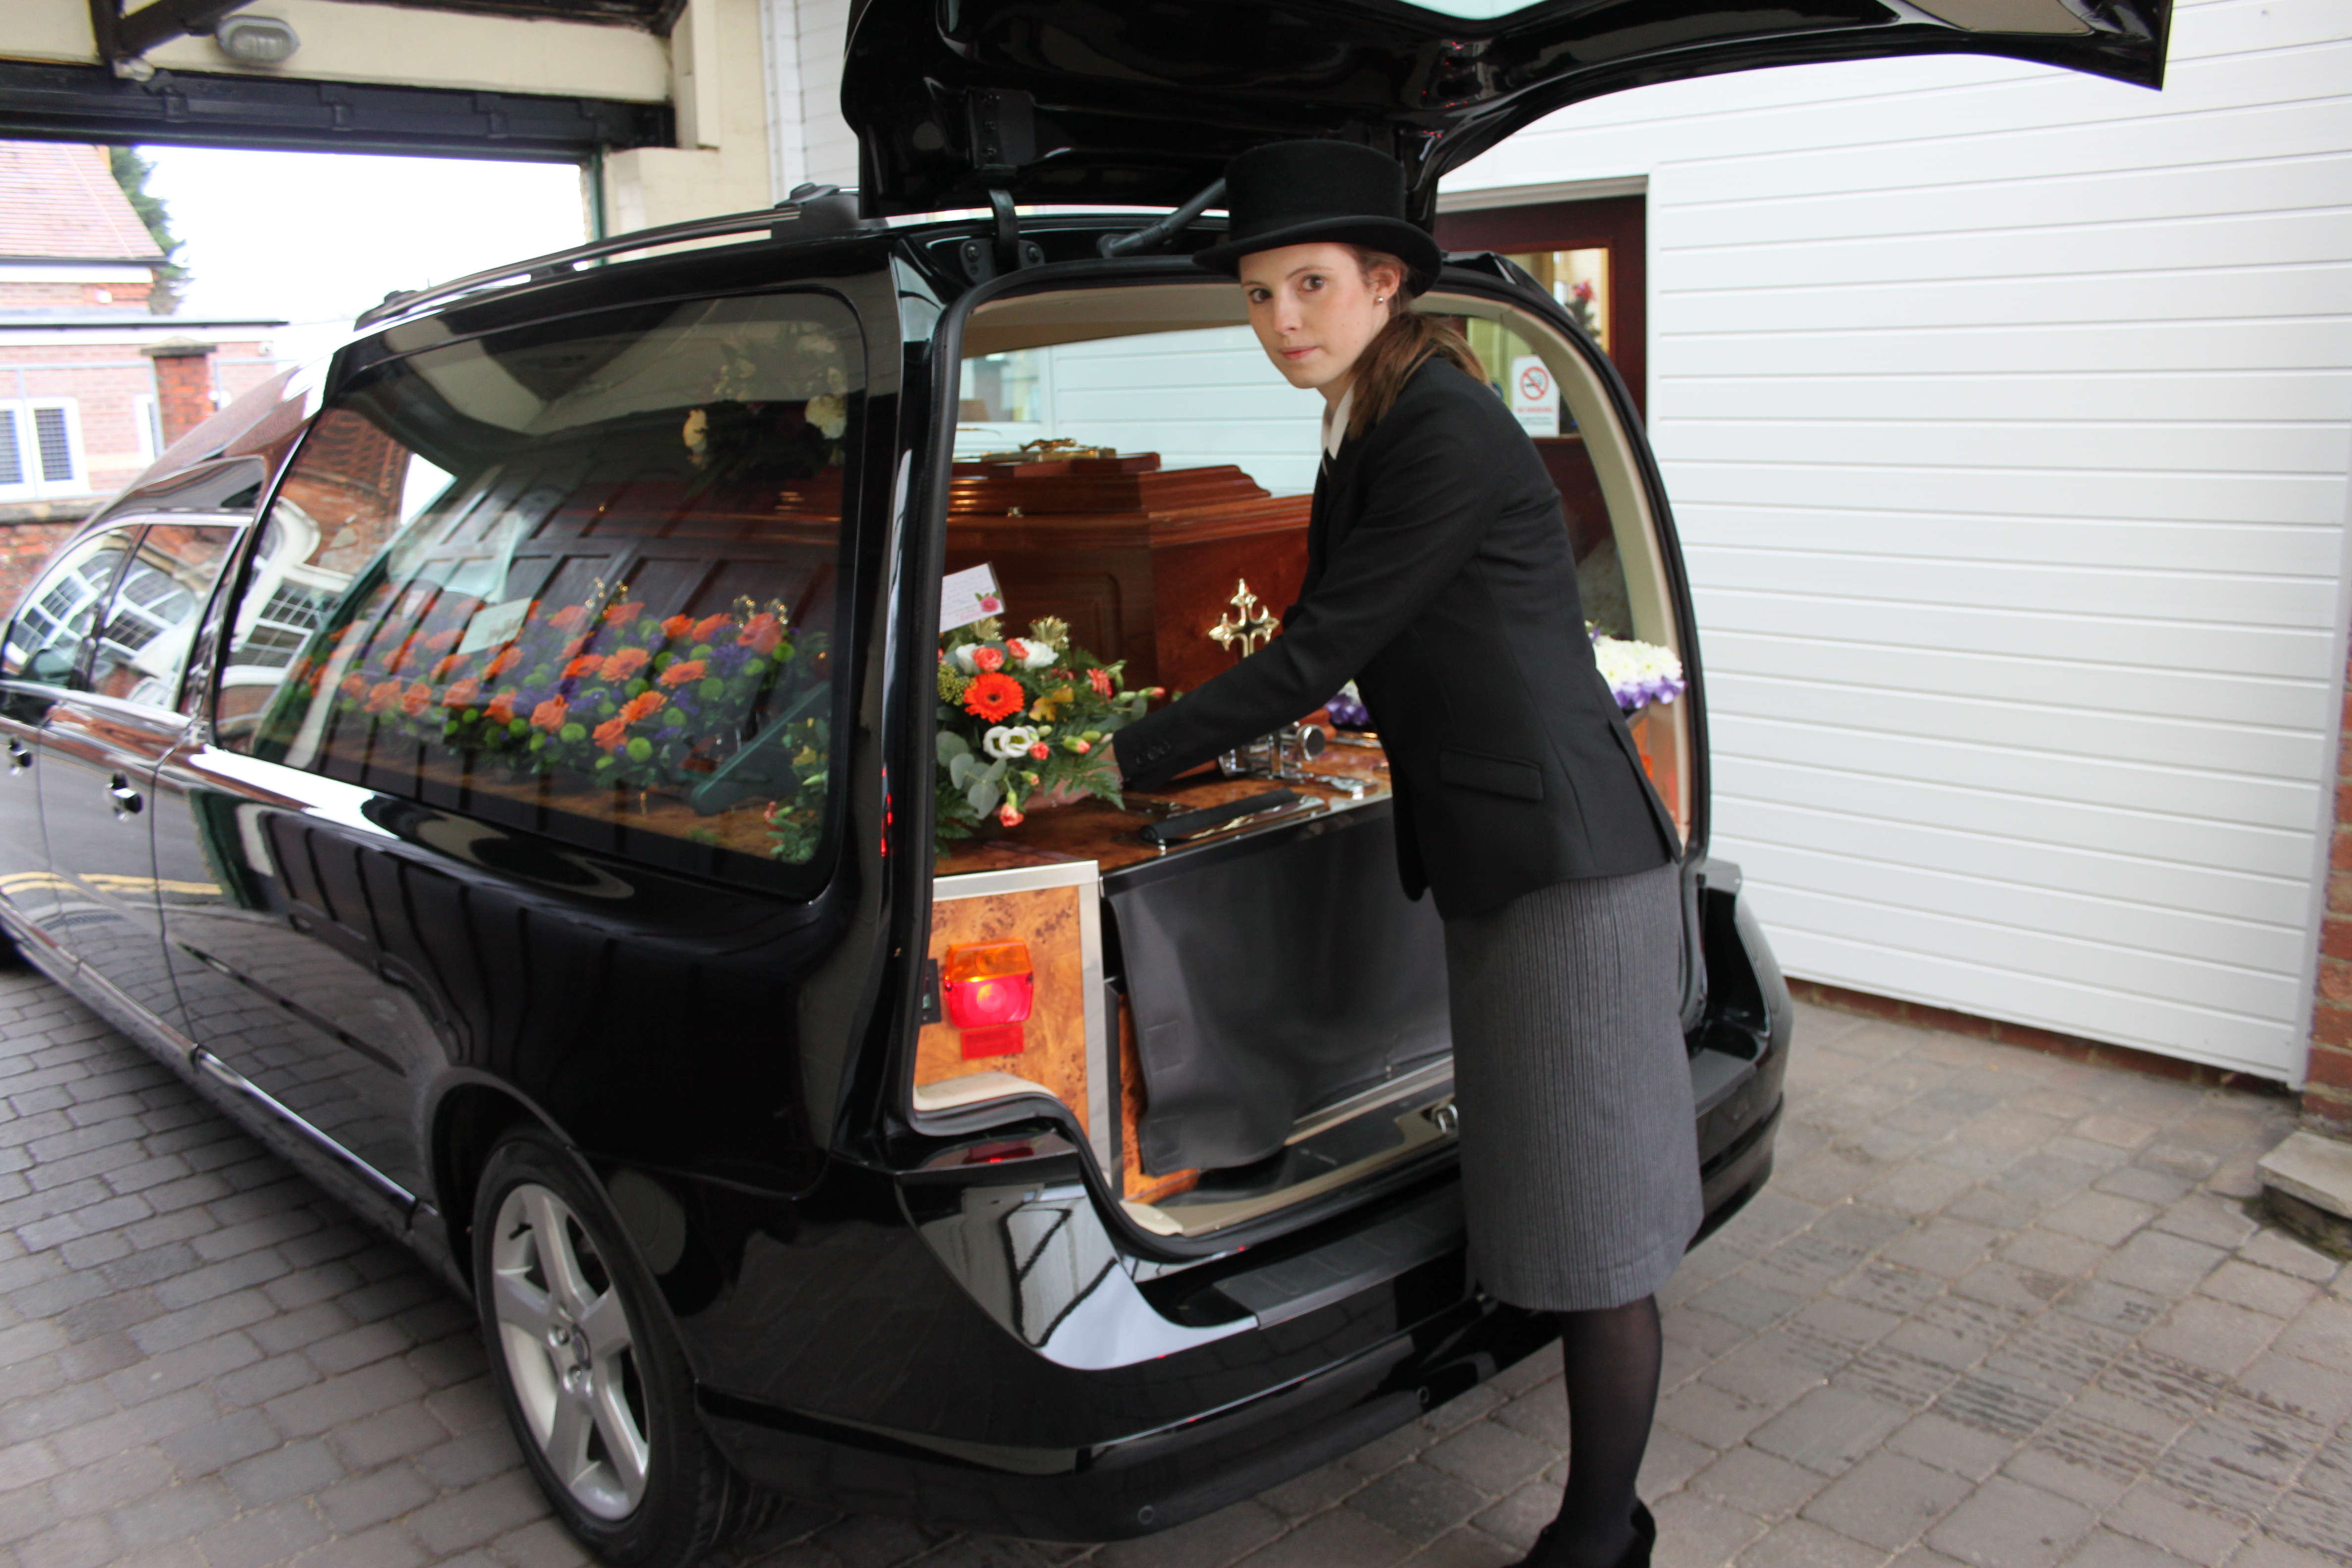 Texas Limo And Bus Llc 1 likewise Funeral Transportation Service moreover Sweet 16 Destination Ideas In Ny And Nj further Image40srcsetlarge0 srcset Large in addition Untitled Design 5. on austin nightlife party buses transportation